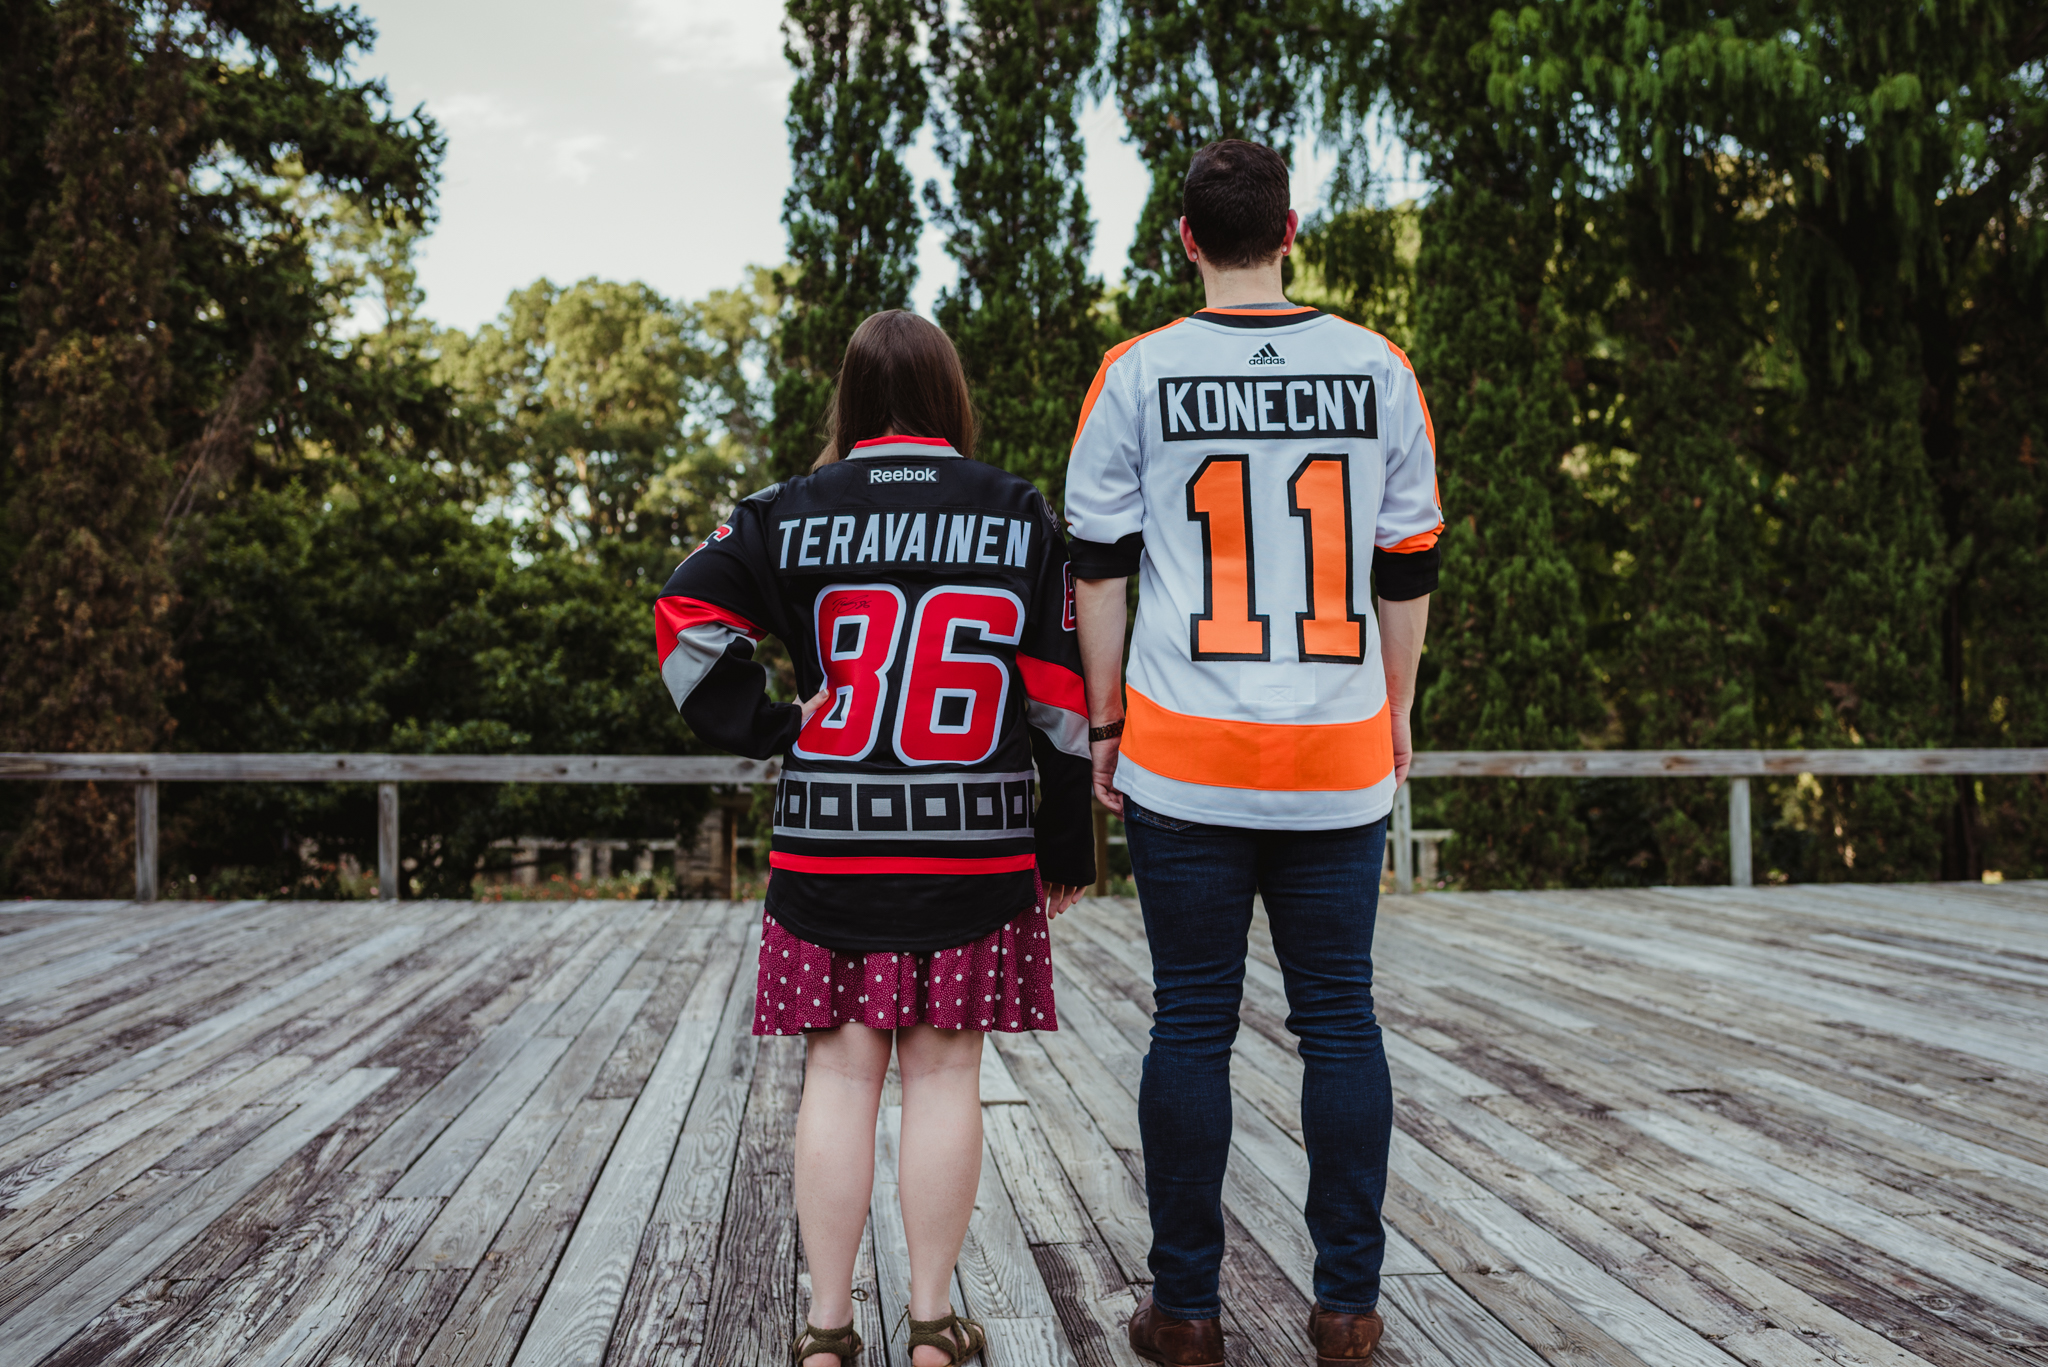 The bride and groom to be, in their Flyers and Hurricanes hockey jerseys, stand next to each other on the Little Theater stage at the Raleigh Rose Garden during their engagement session with Rose Trail Images.